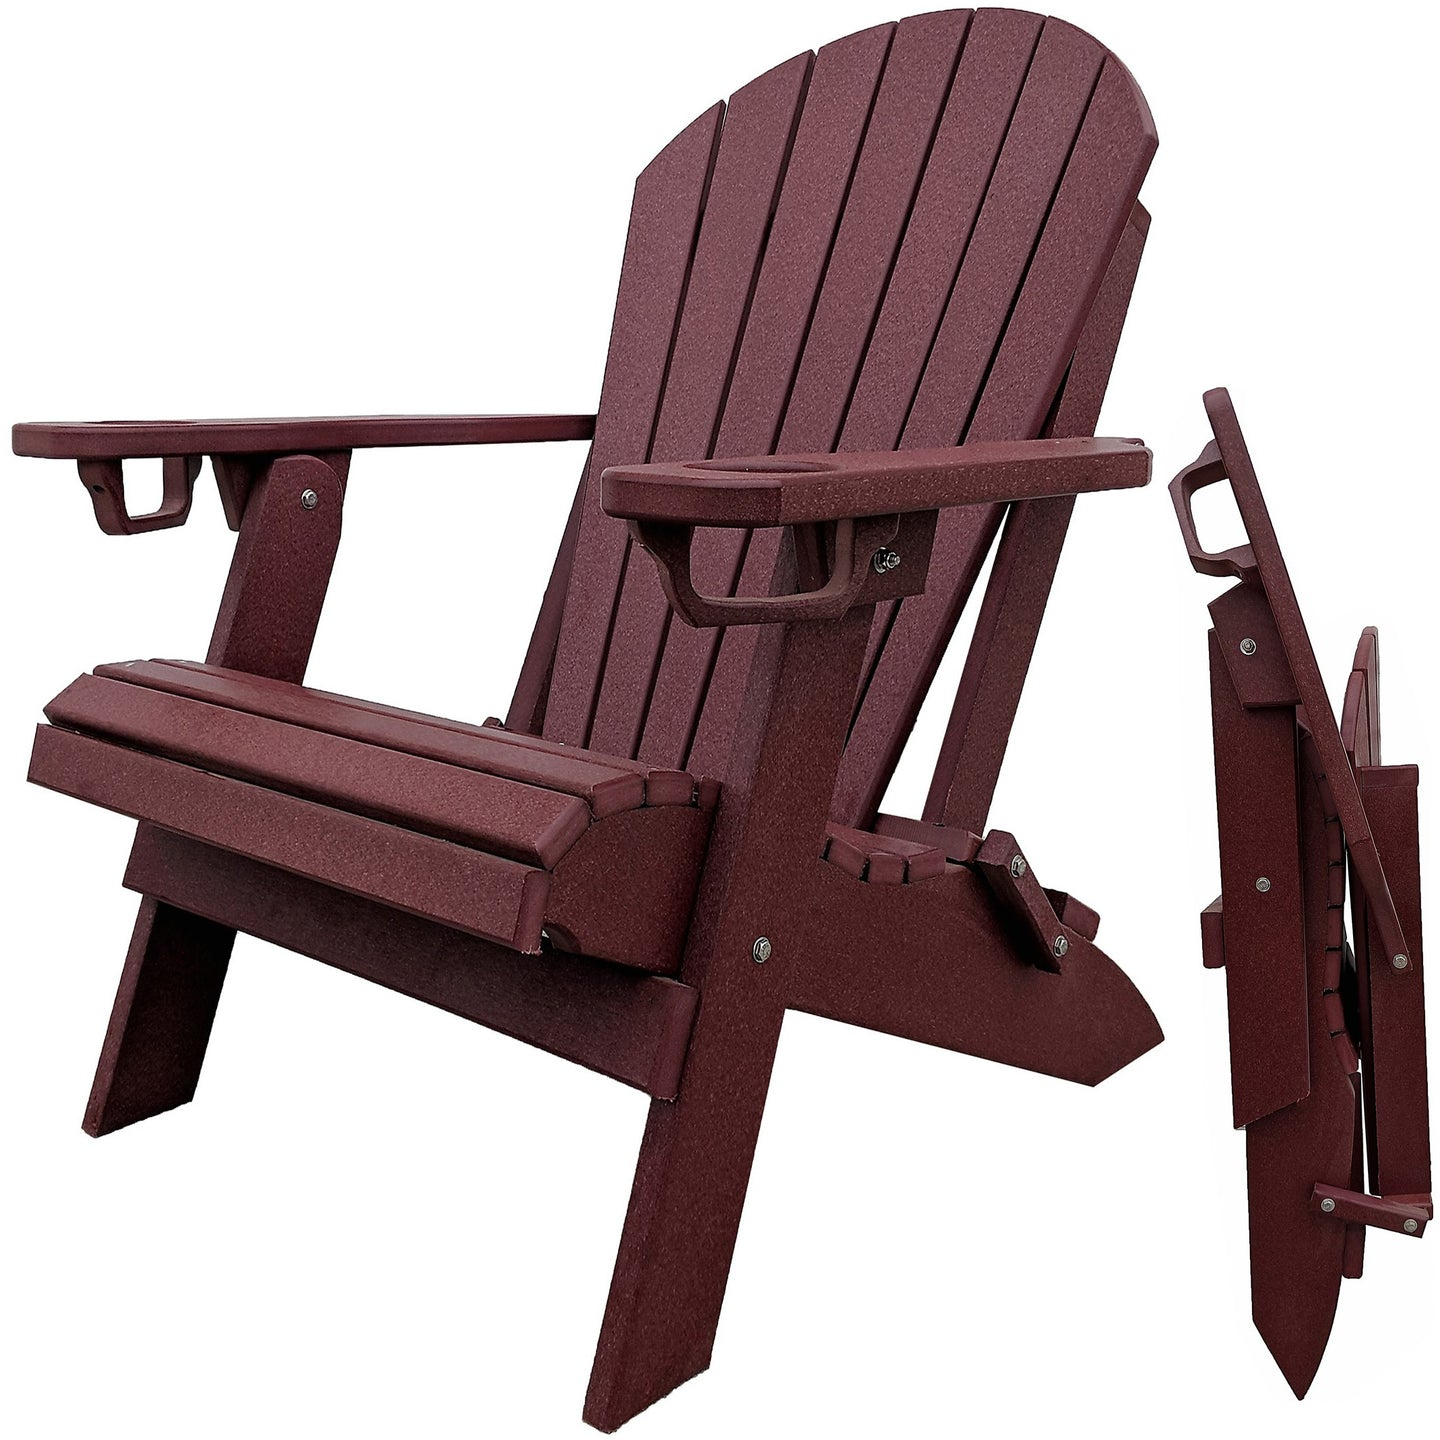 DuraWeather Poly® Premium King Size Folding Adirondack Chair with Built-in Cup Holders - (Merlot Burgundy)